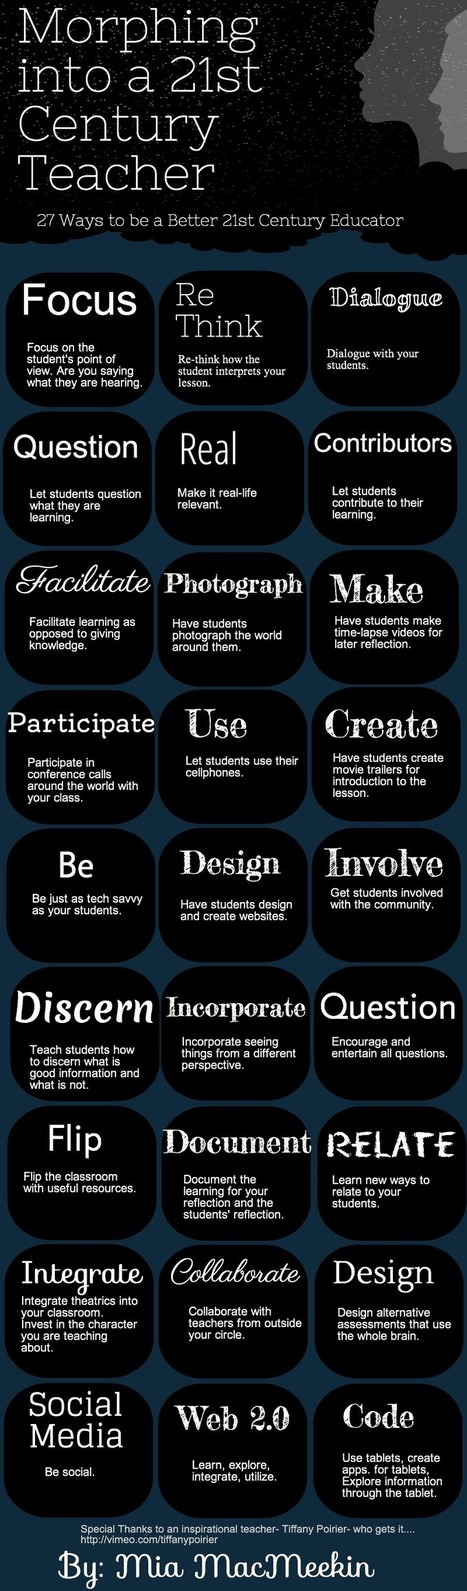 27 Ways To Be A 21st Century Teacher | My Education Page1 | Scoop.it